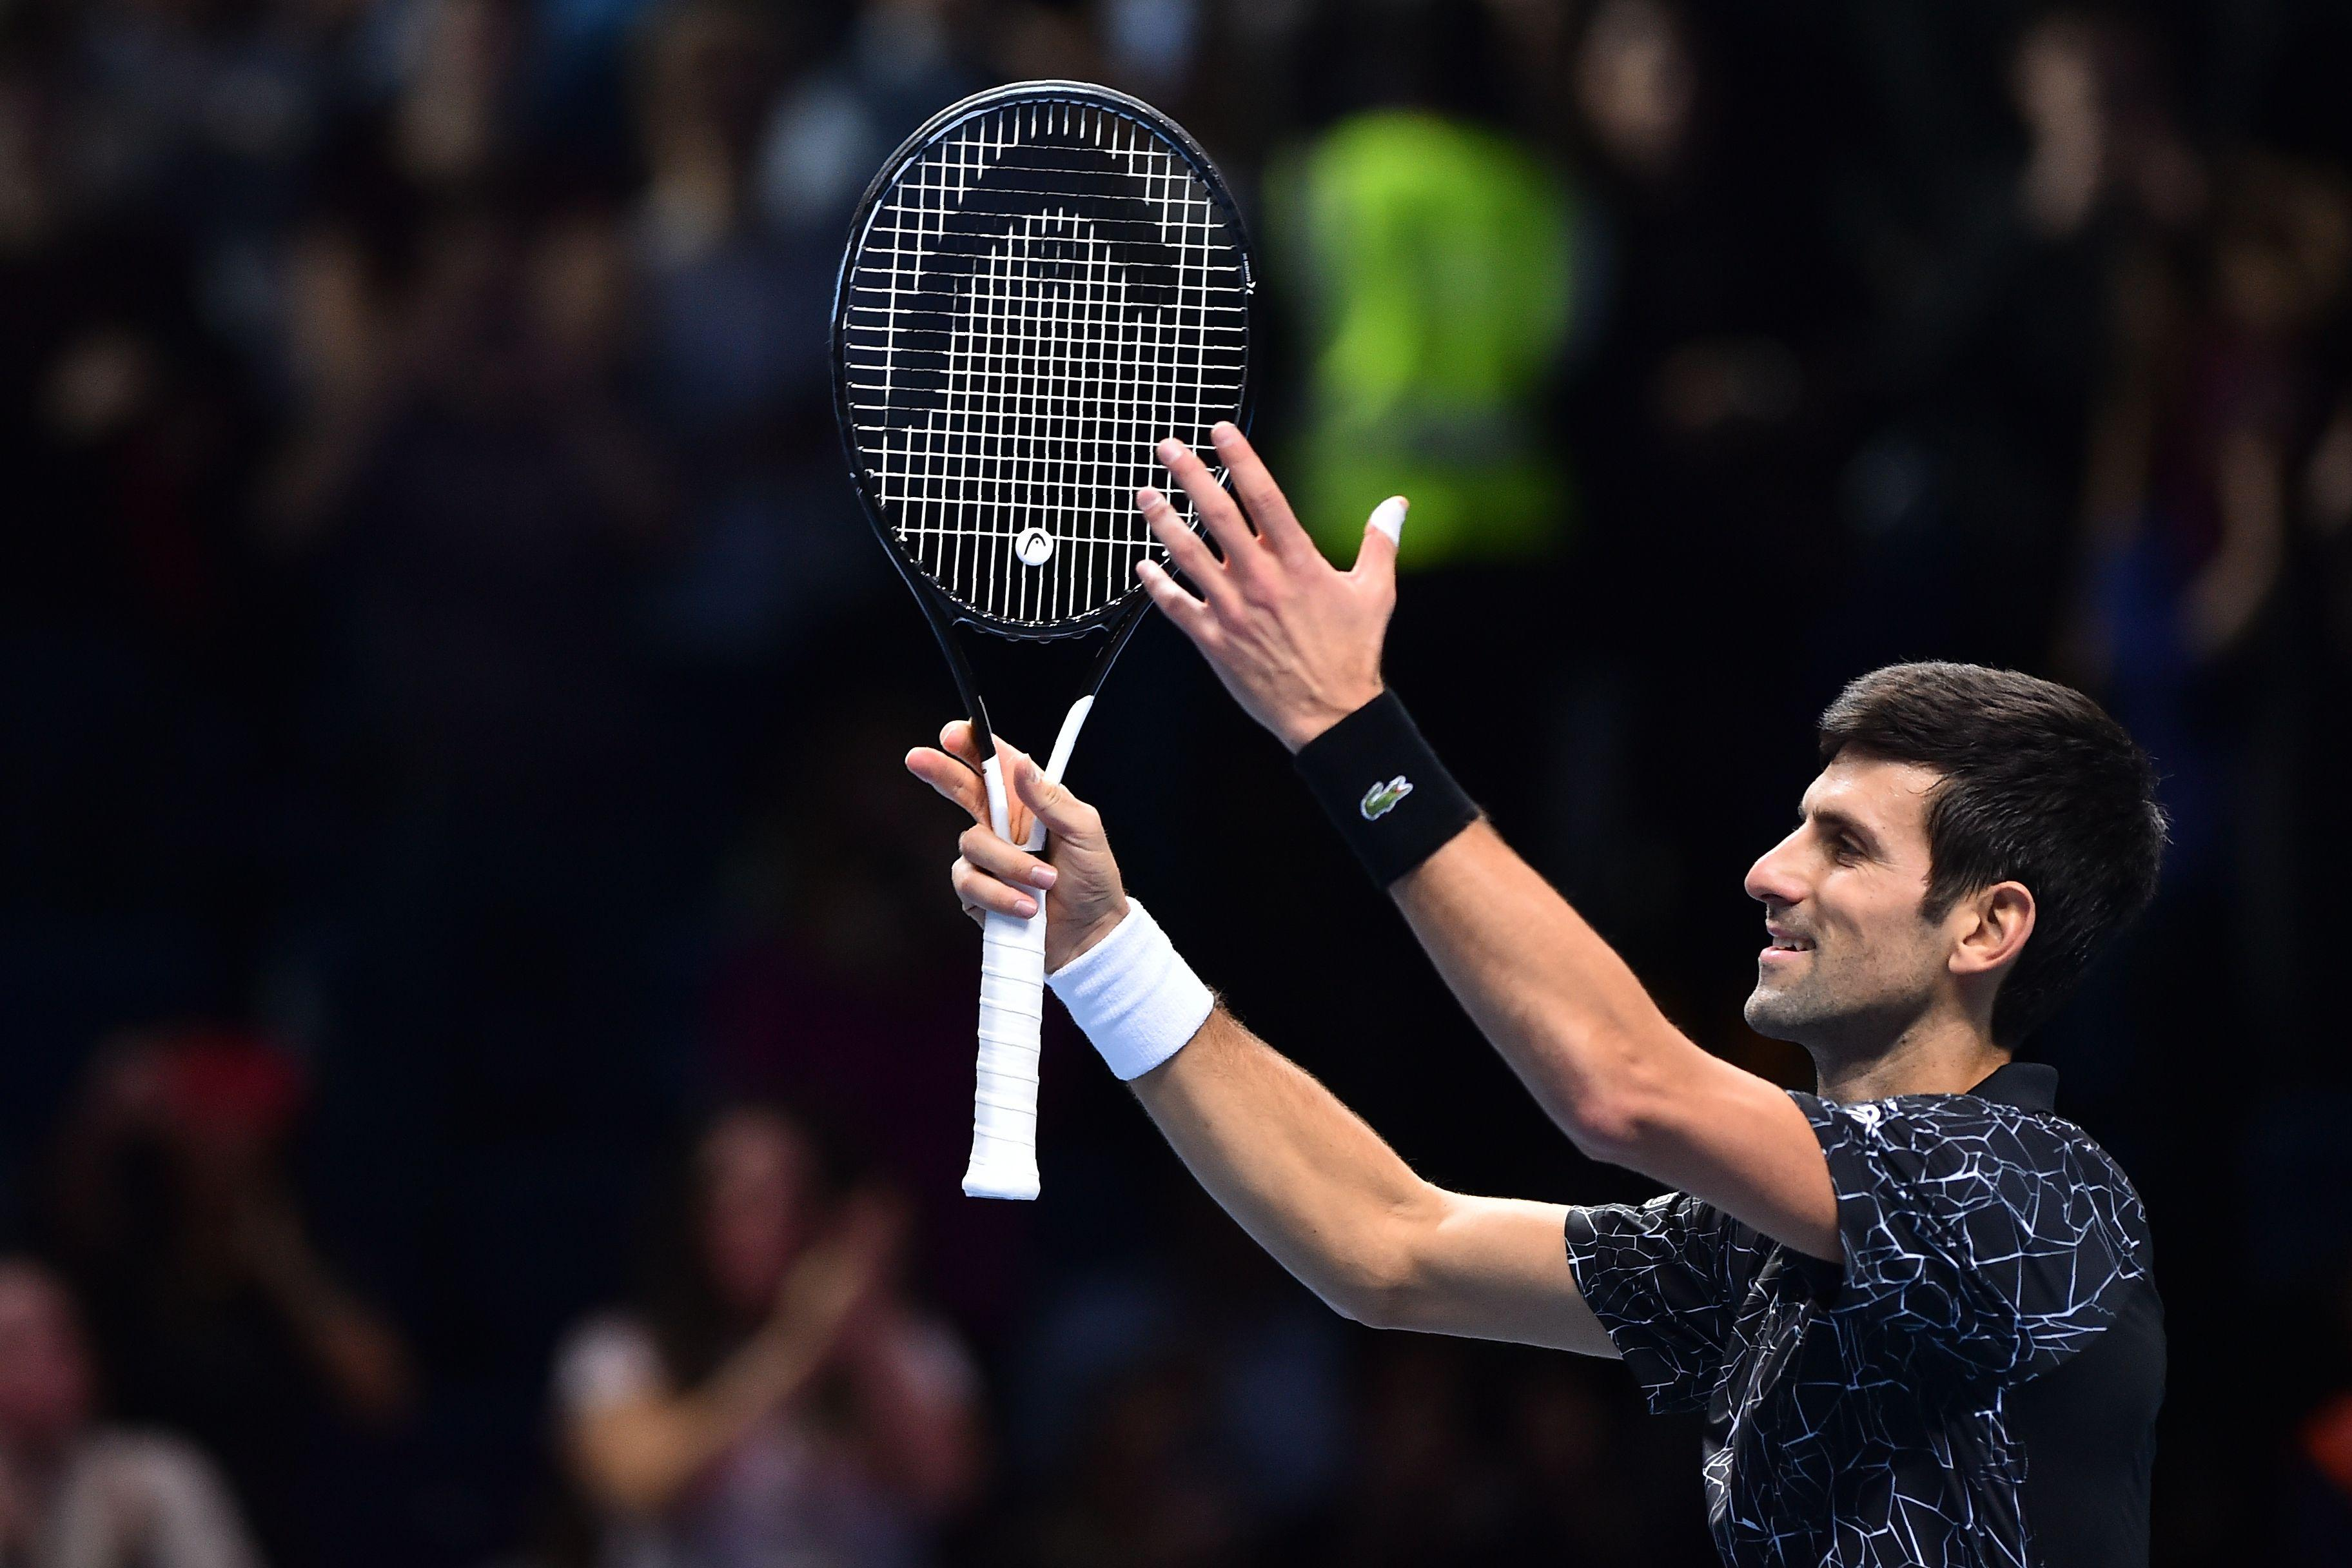 Novak Djokovic maintains 100 per cent record at the Finals after defeating Cilic in straight sets